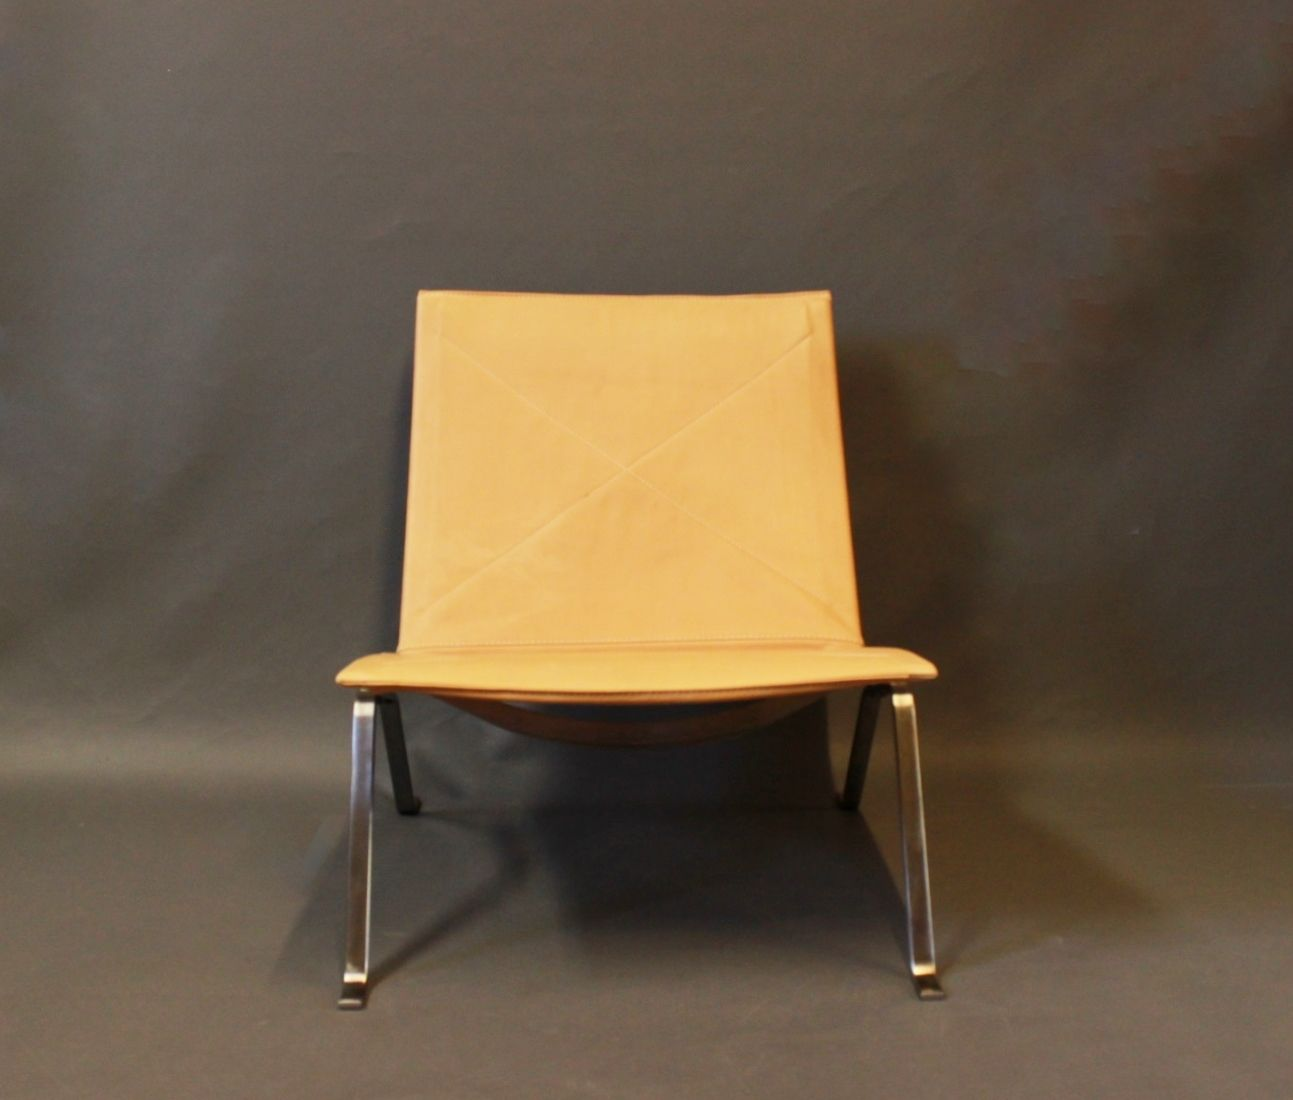 PK22 Chair By Poul Kj Rholm 1970s For Sale At Pamono